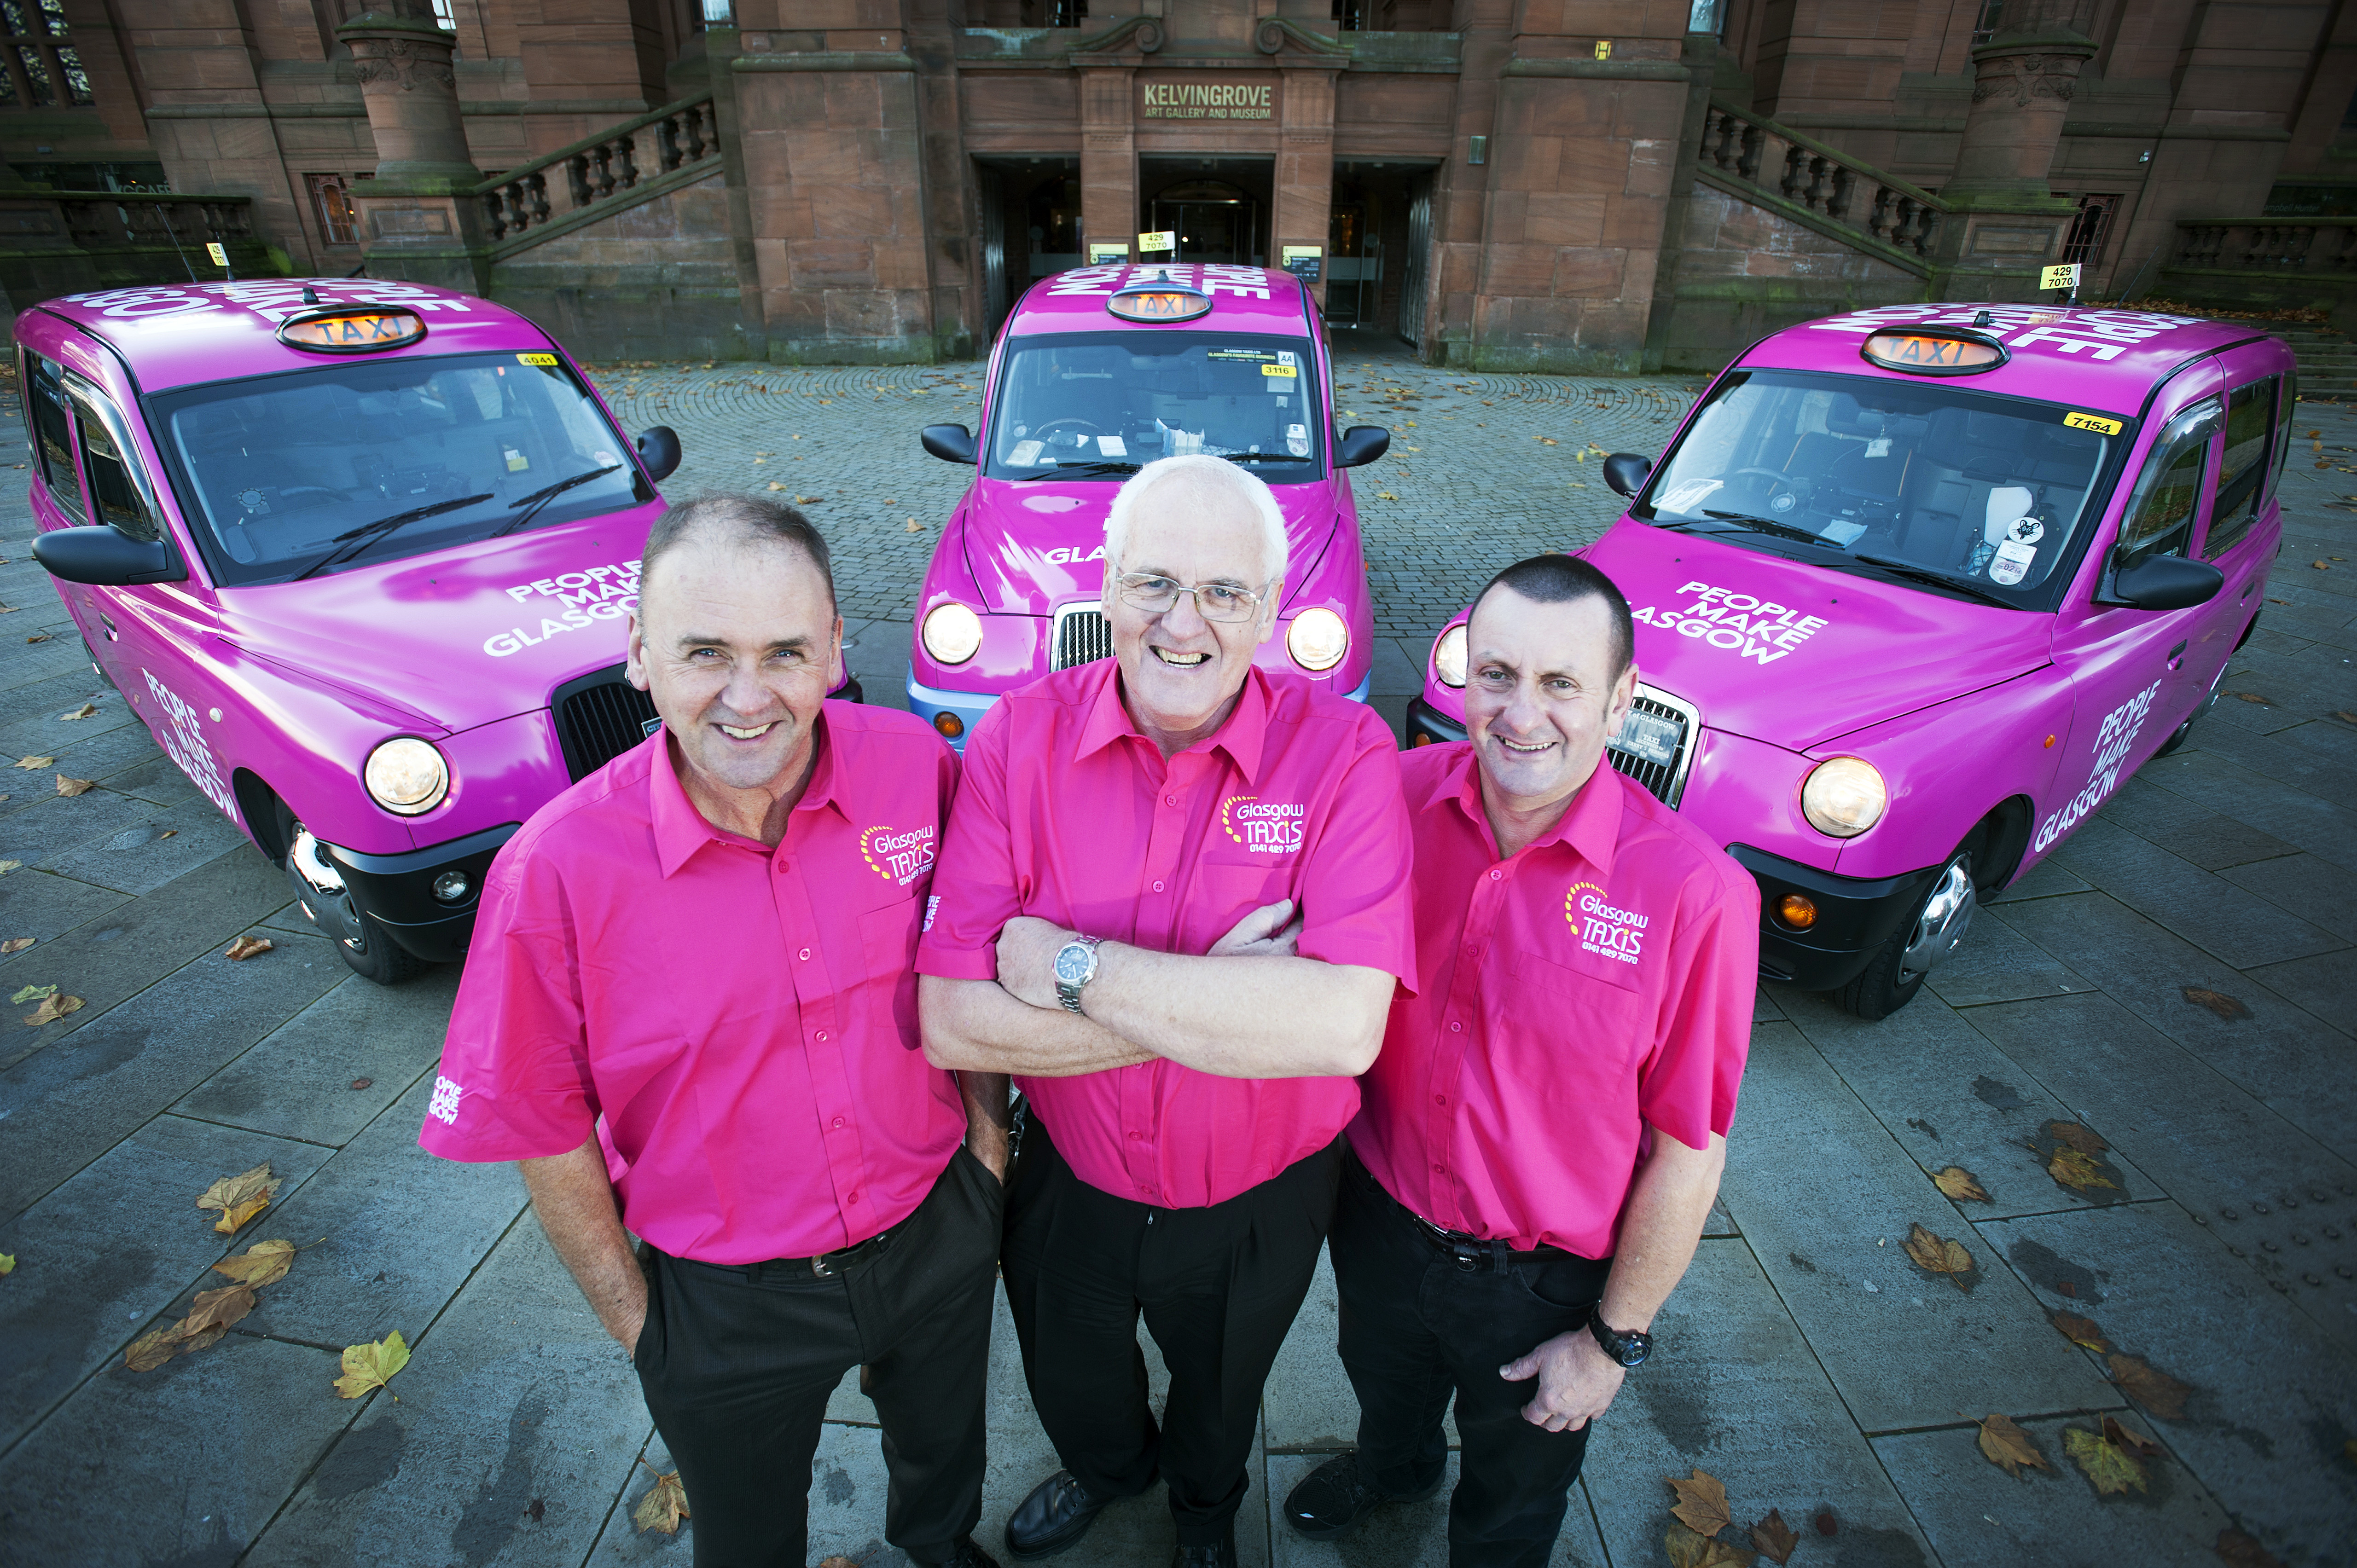 People Make Glasgow Taxis. 29/10/13 Picture © Andy Buchanan 2013People Make Glasgow Taxis. Pictures are taxi drivers (L to R) Kevin McEntee, Andy Semple, Davie Coull. 29/10/13 Picture © Andy Buchanan 2013